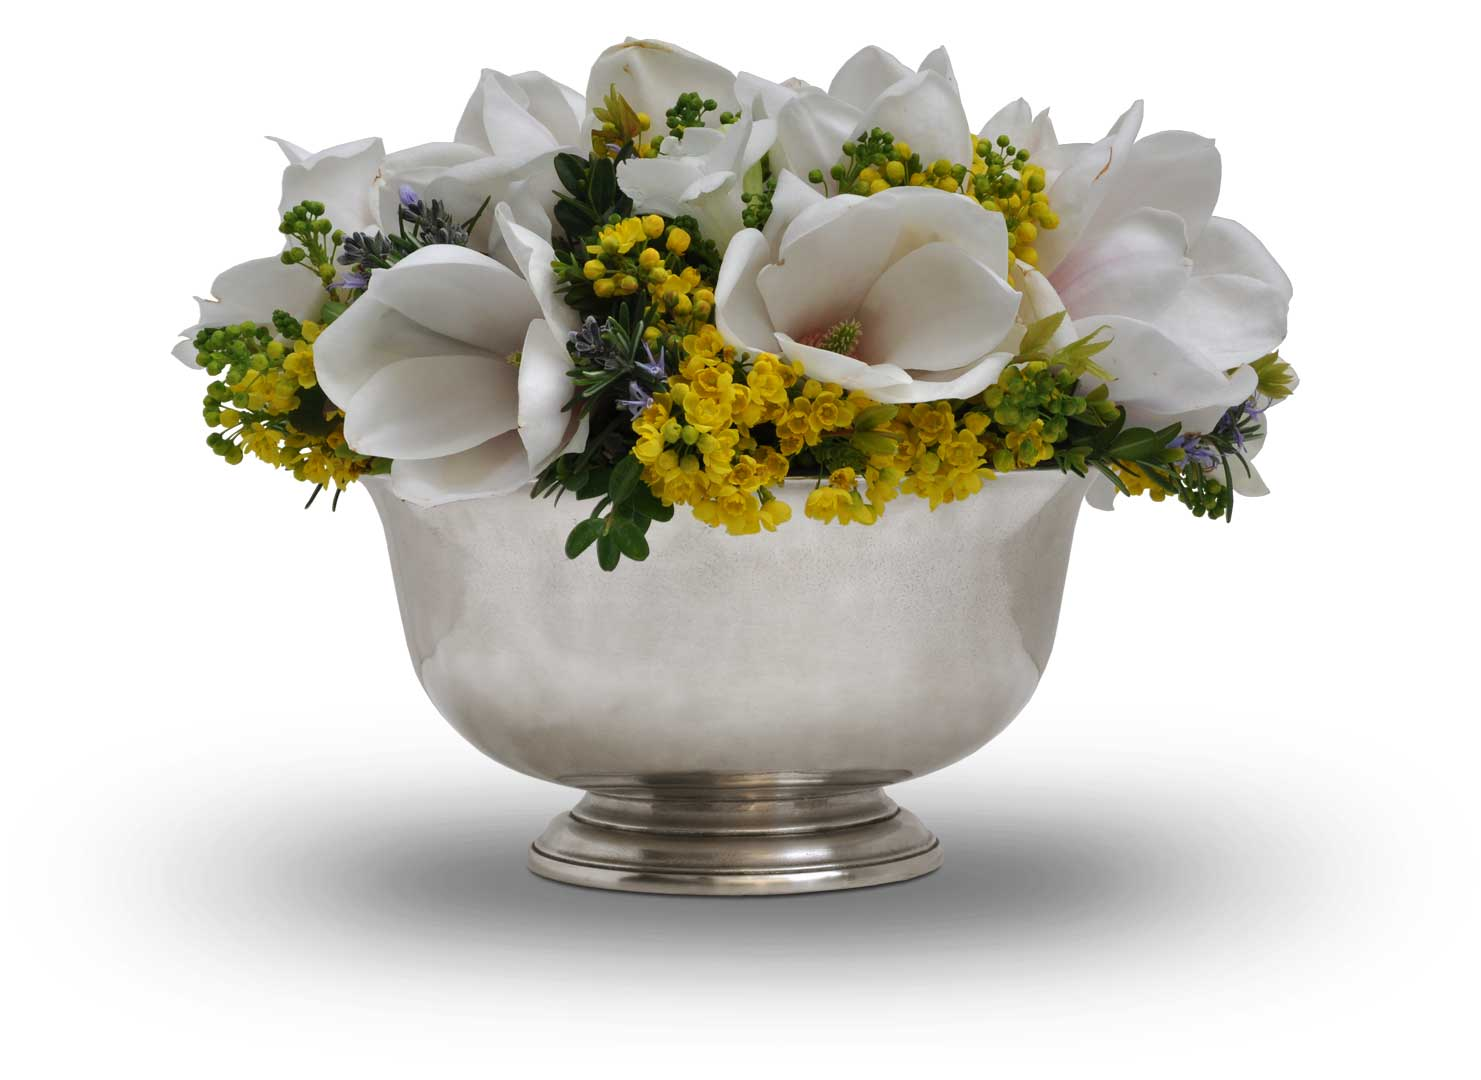 Footed Bowl With Insert For Flowers Grey Pewter Cm 216 21 5 H 11 By Cosi Tabellini